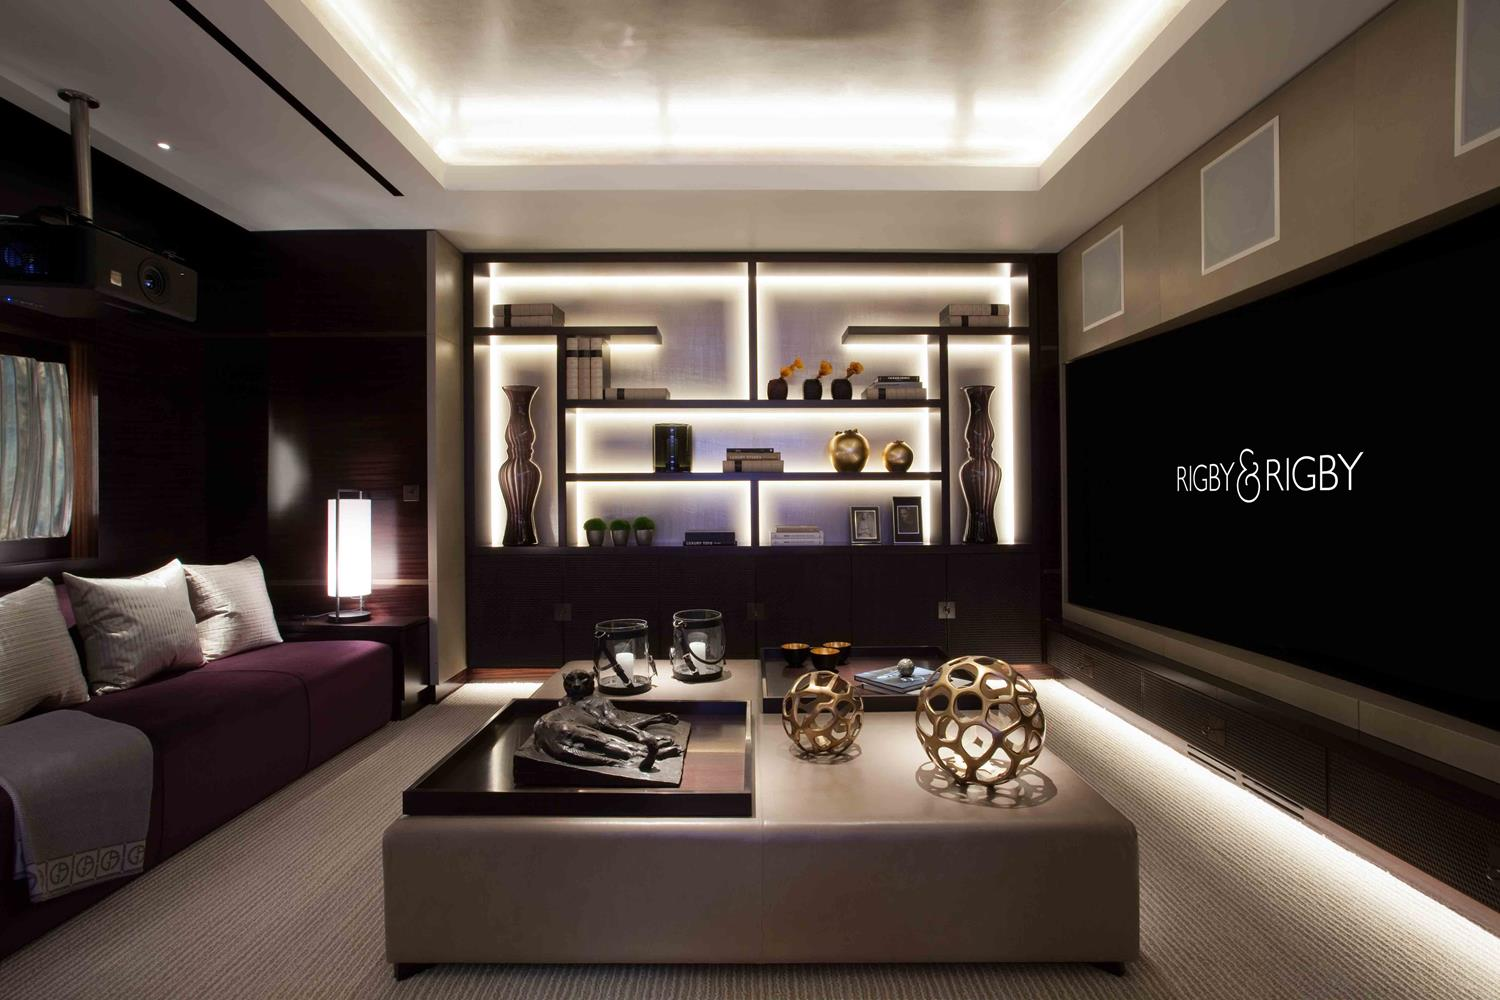 gallery_residential_knightsbridge_london_20